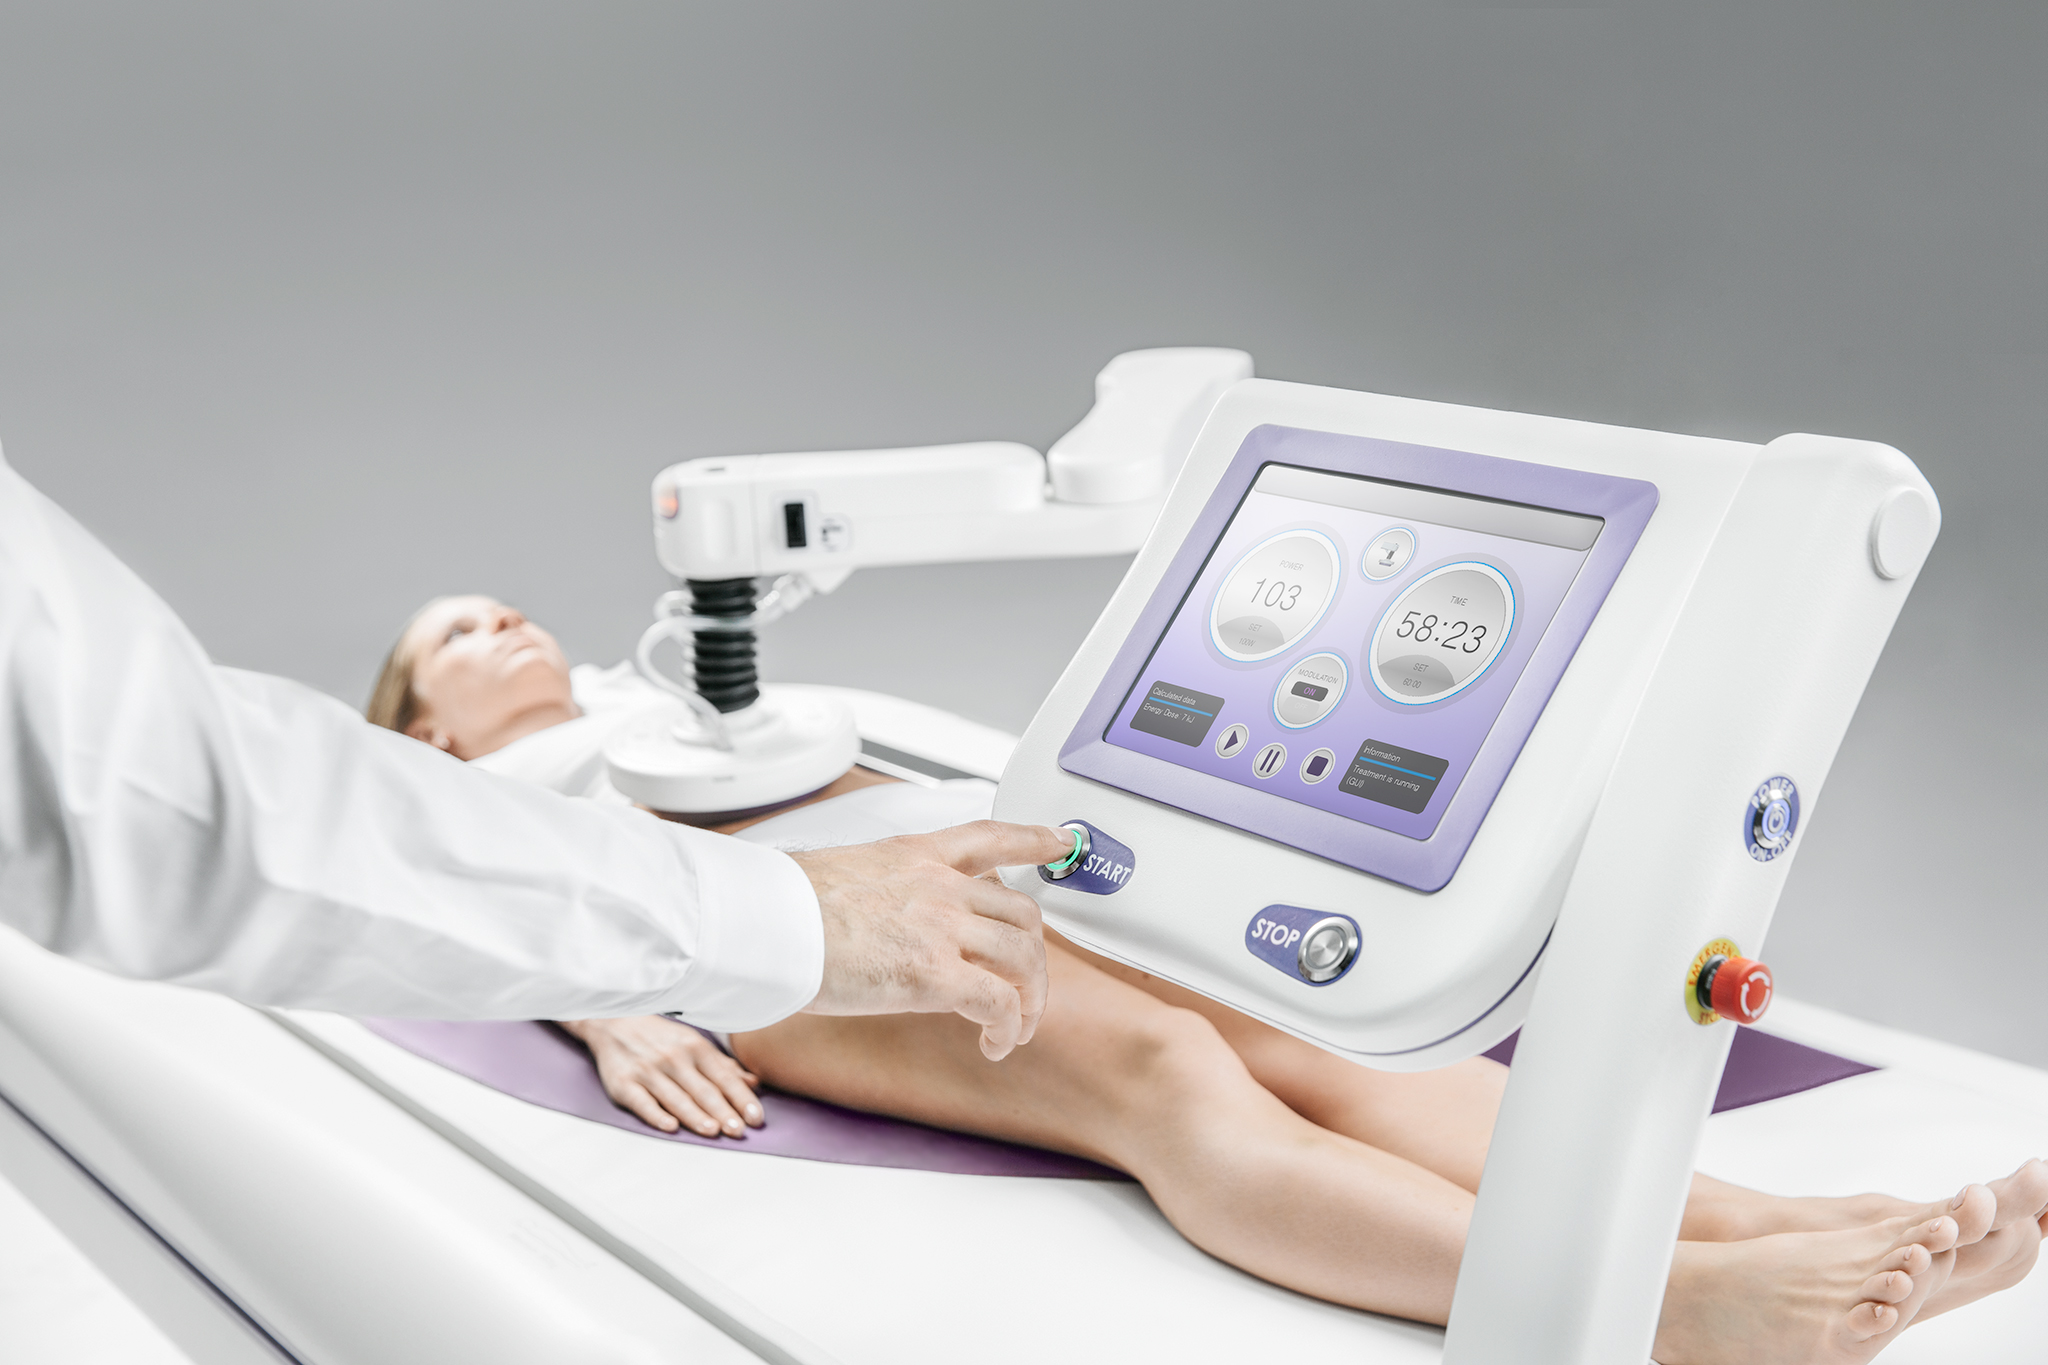 EHY-2030 - new device of Oncotherm